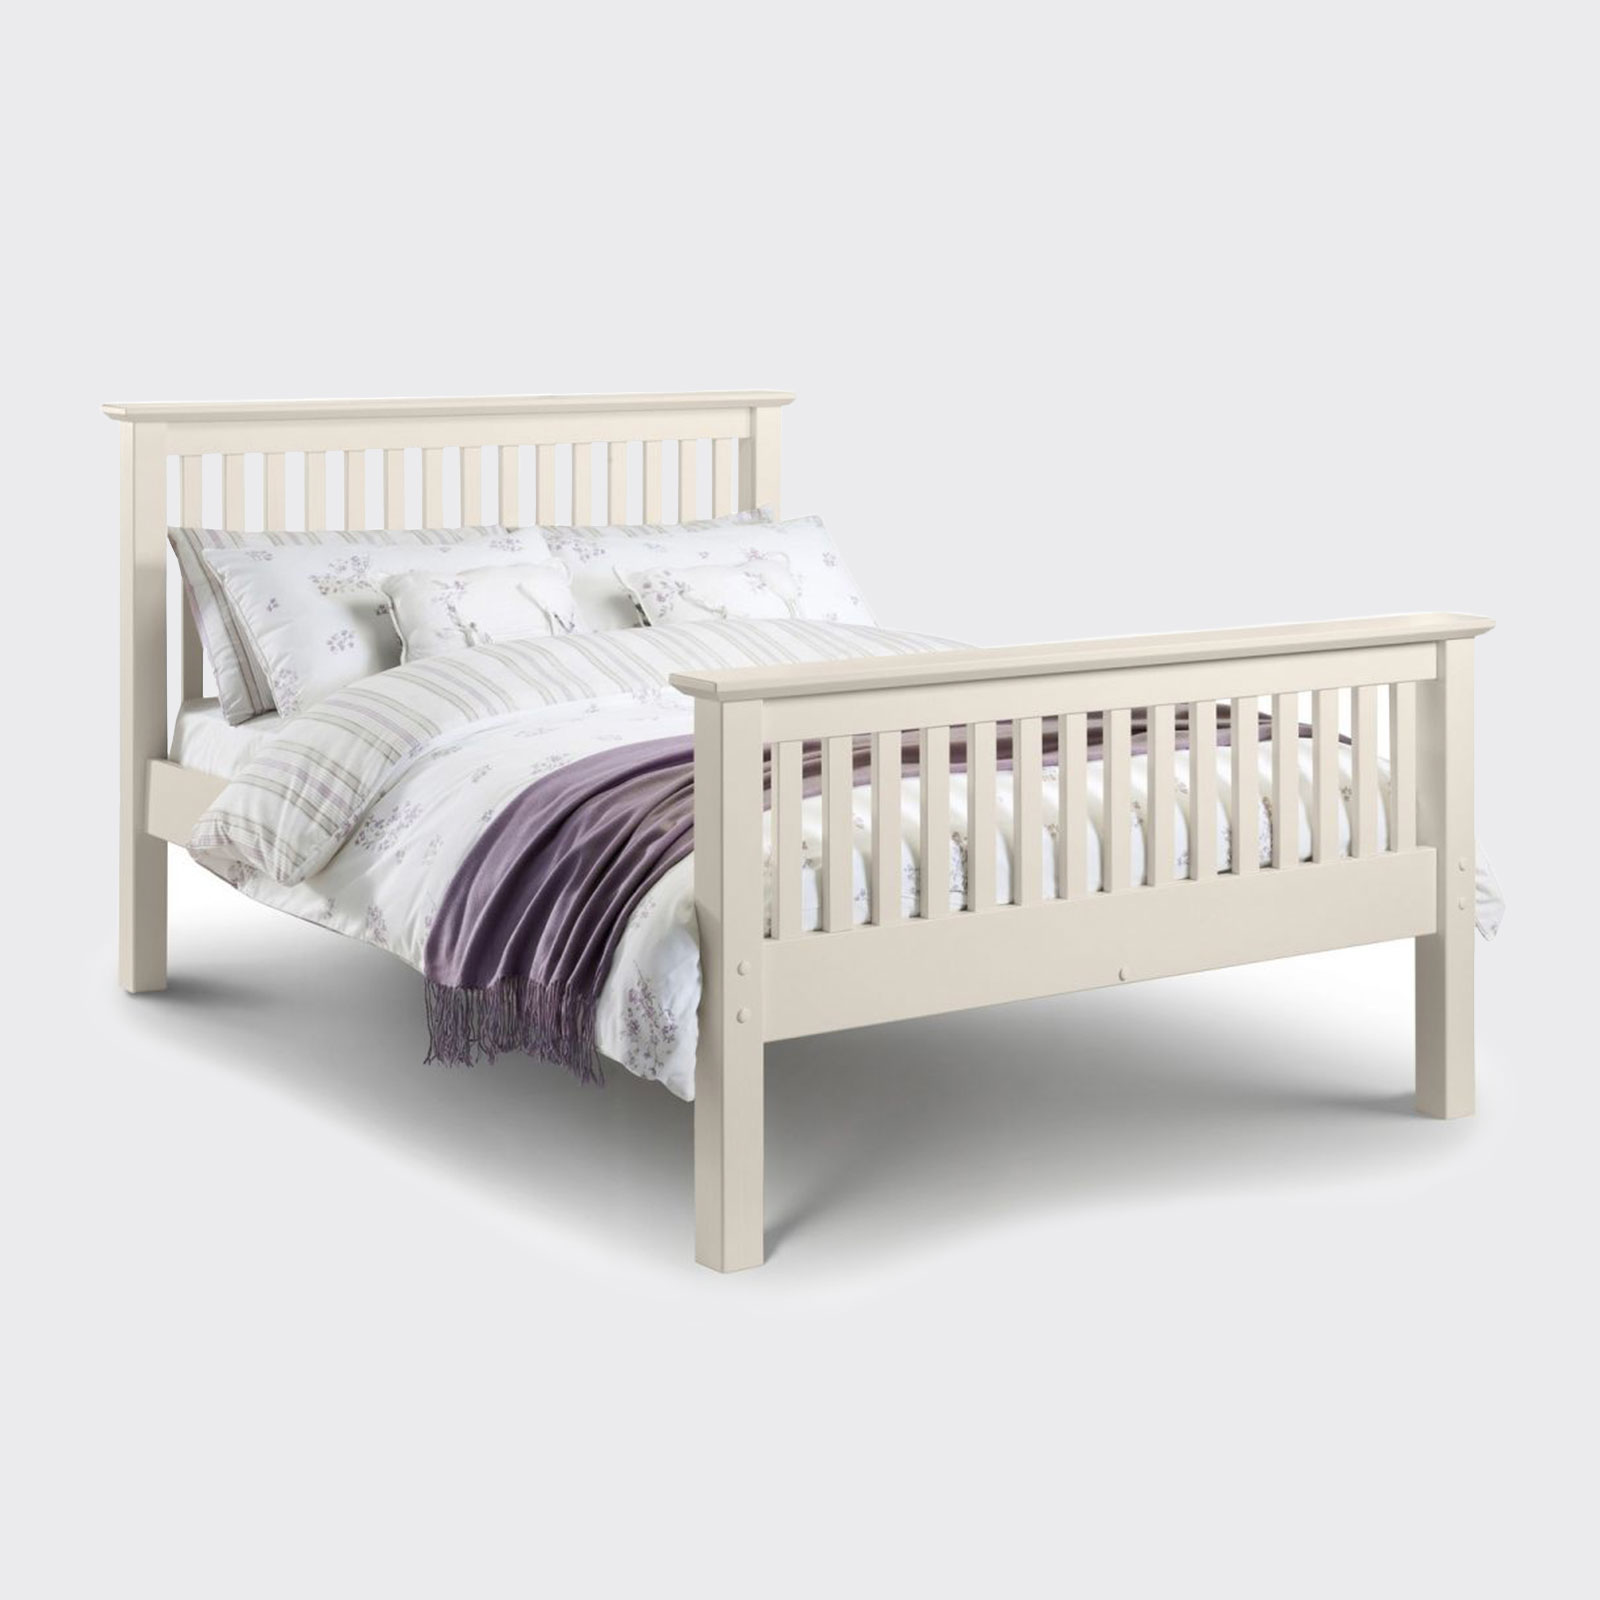 Barcelona stone white high foot end bed including mattress